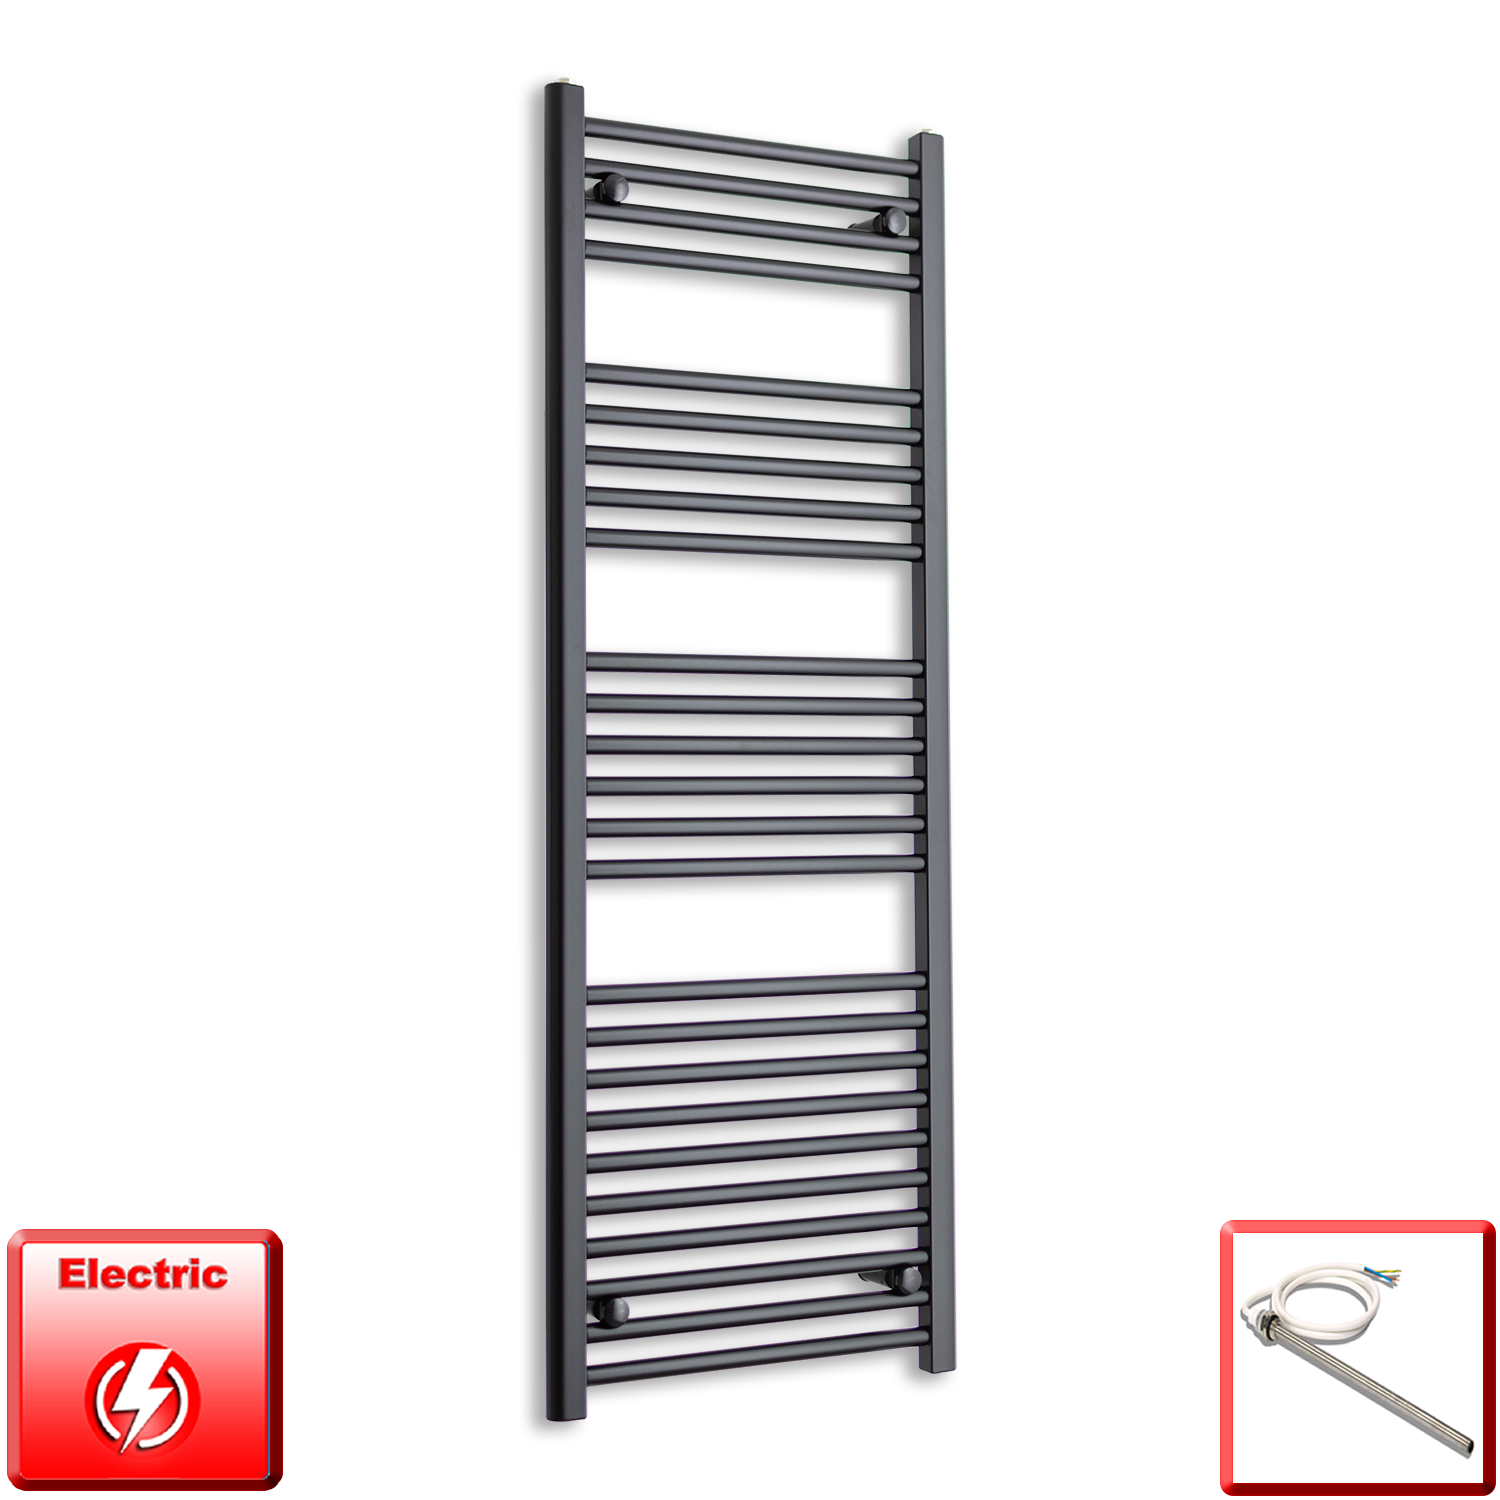 500mm Wide 1200mm High Pre-Filled Black Electric Towel Rail Radiator With Single Heat Element